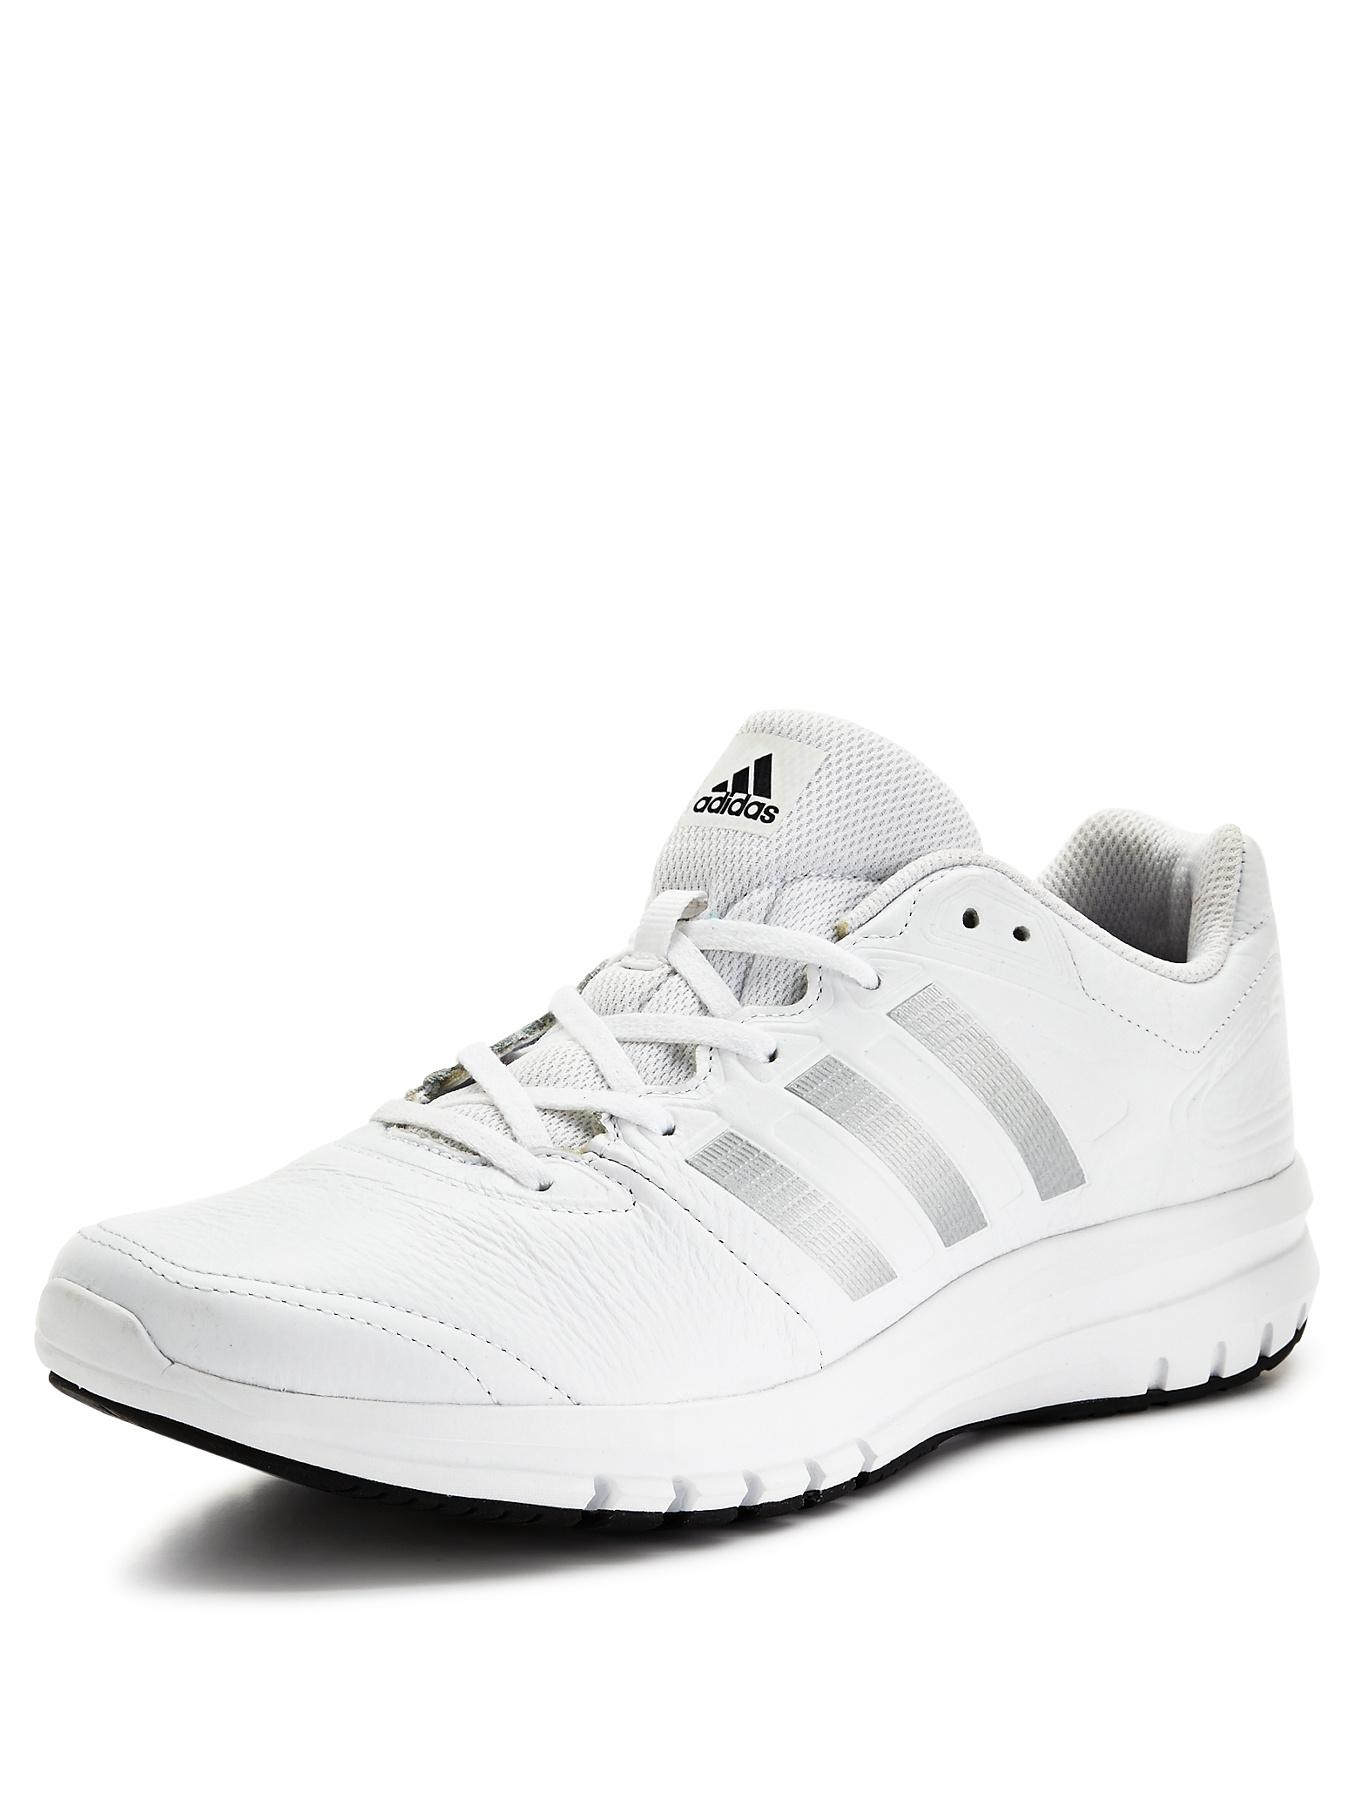 Duramo 6 Leather Mens Trainers - White, White